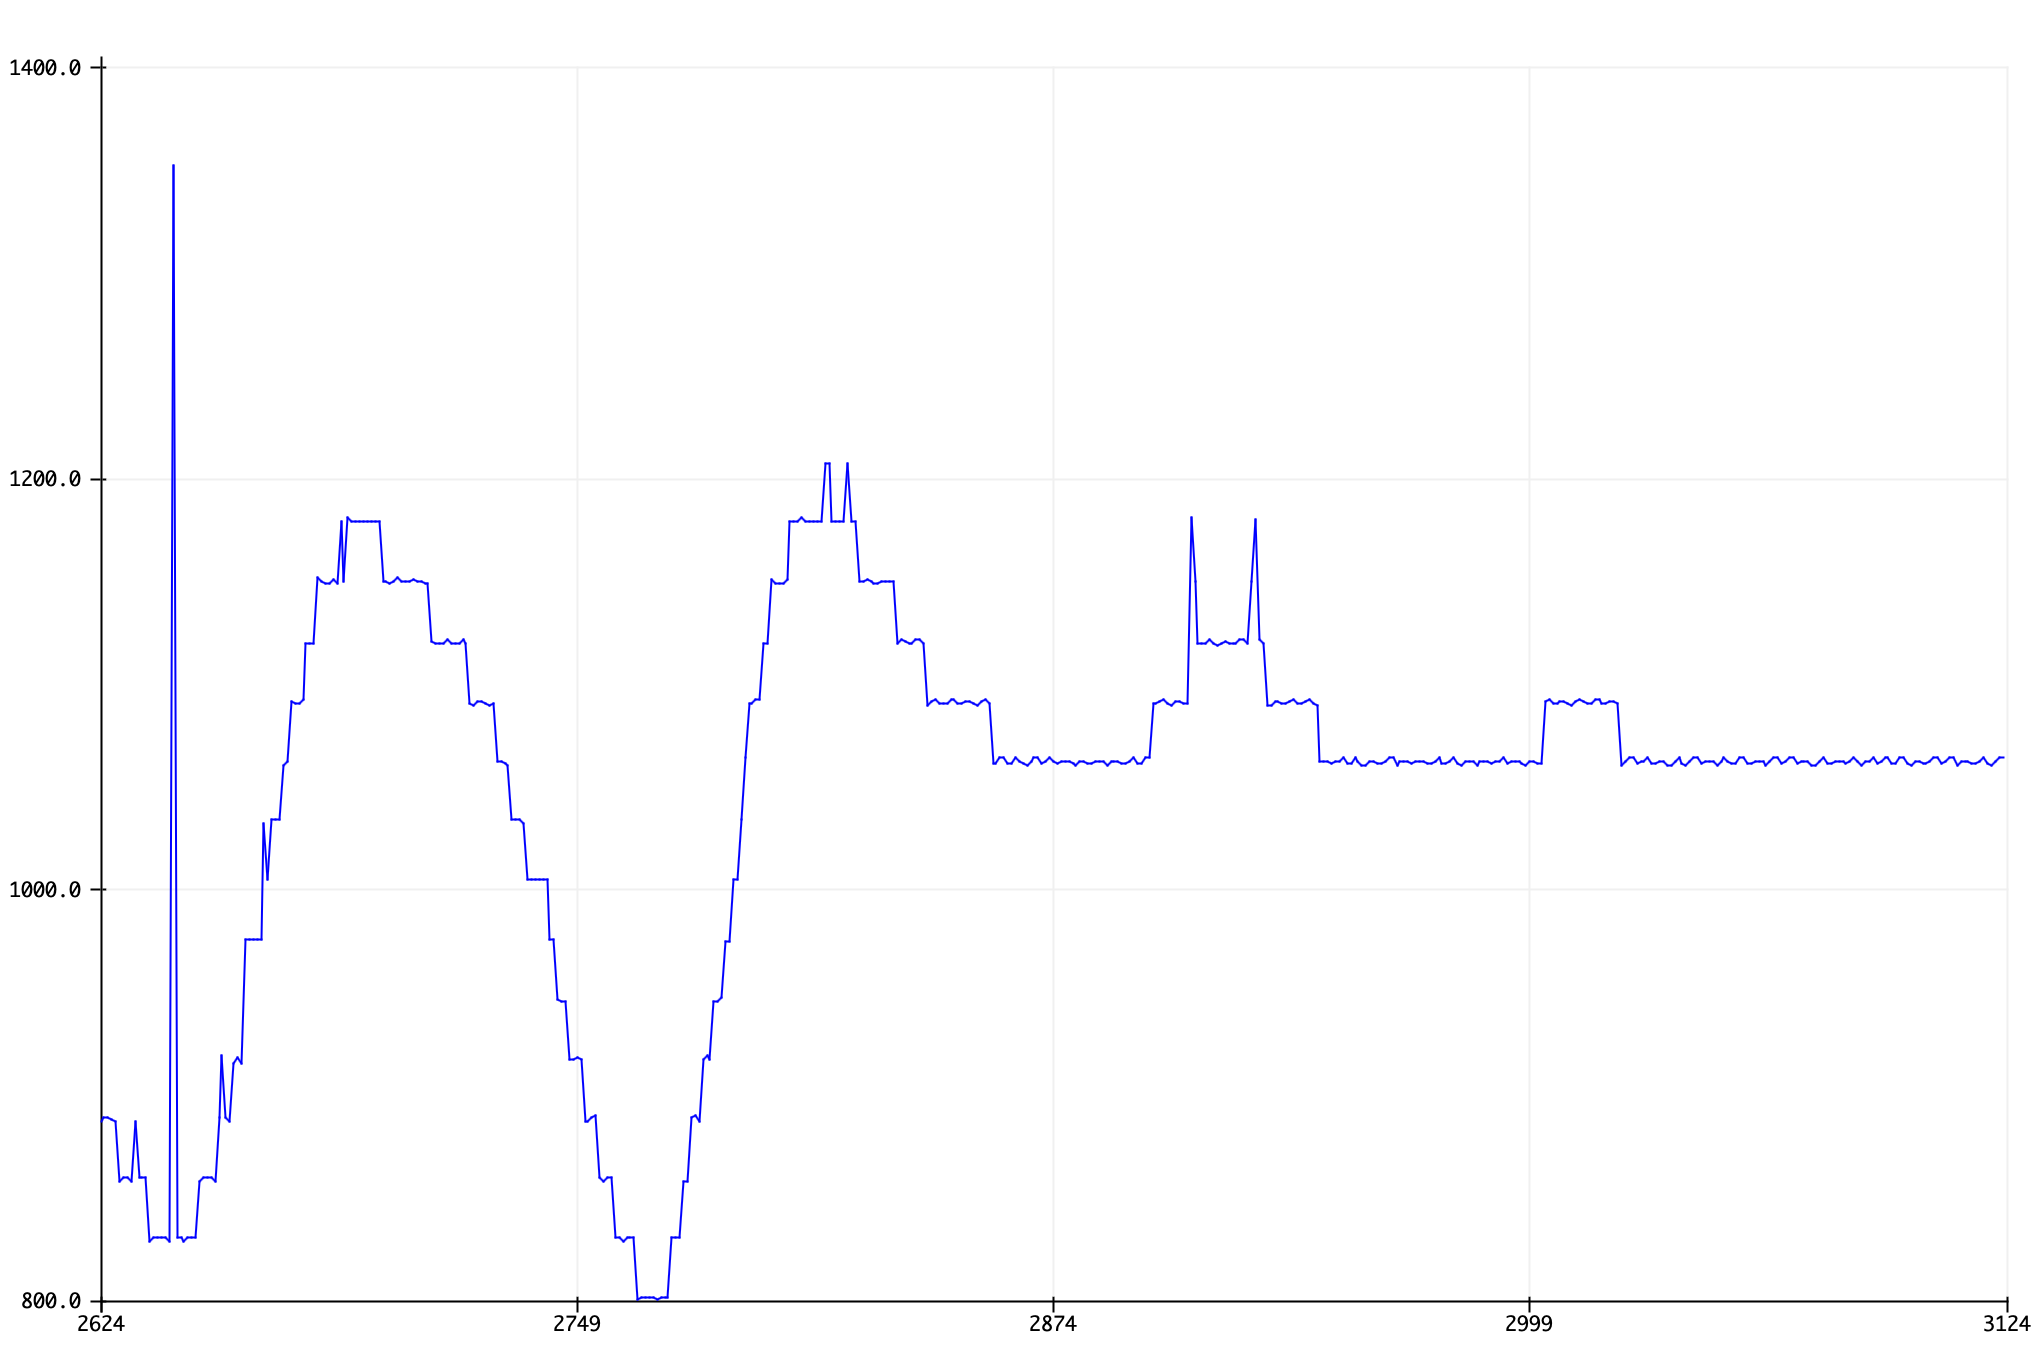 Distance data from LV-MaxSonar-EZ0 after calibration